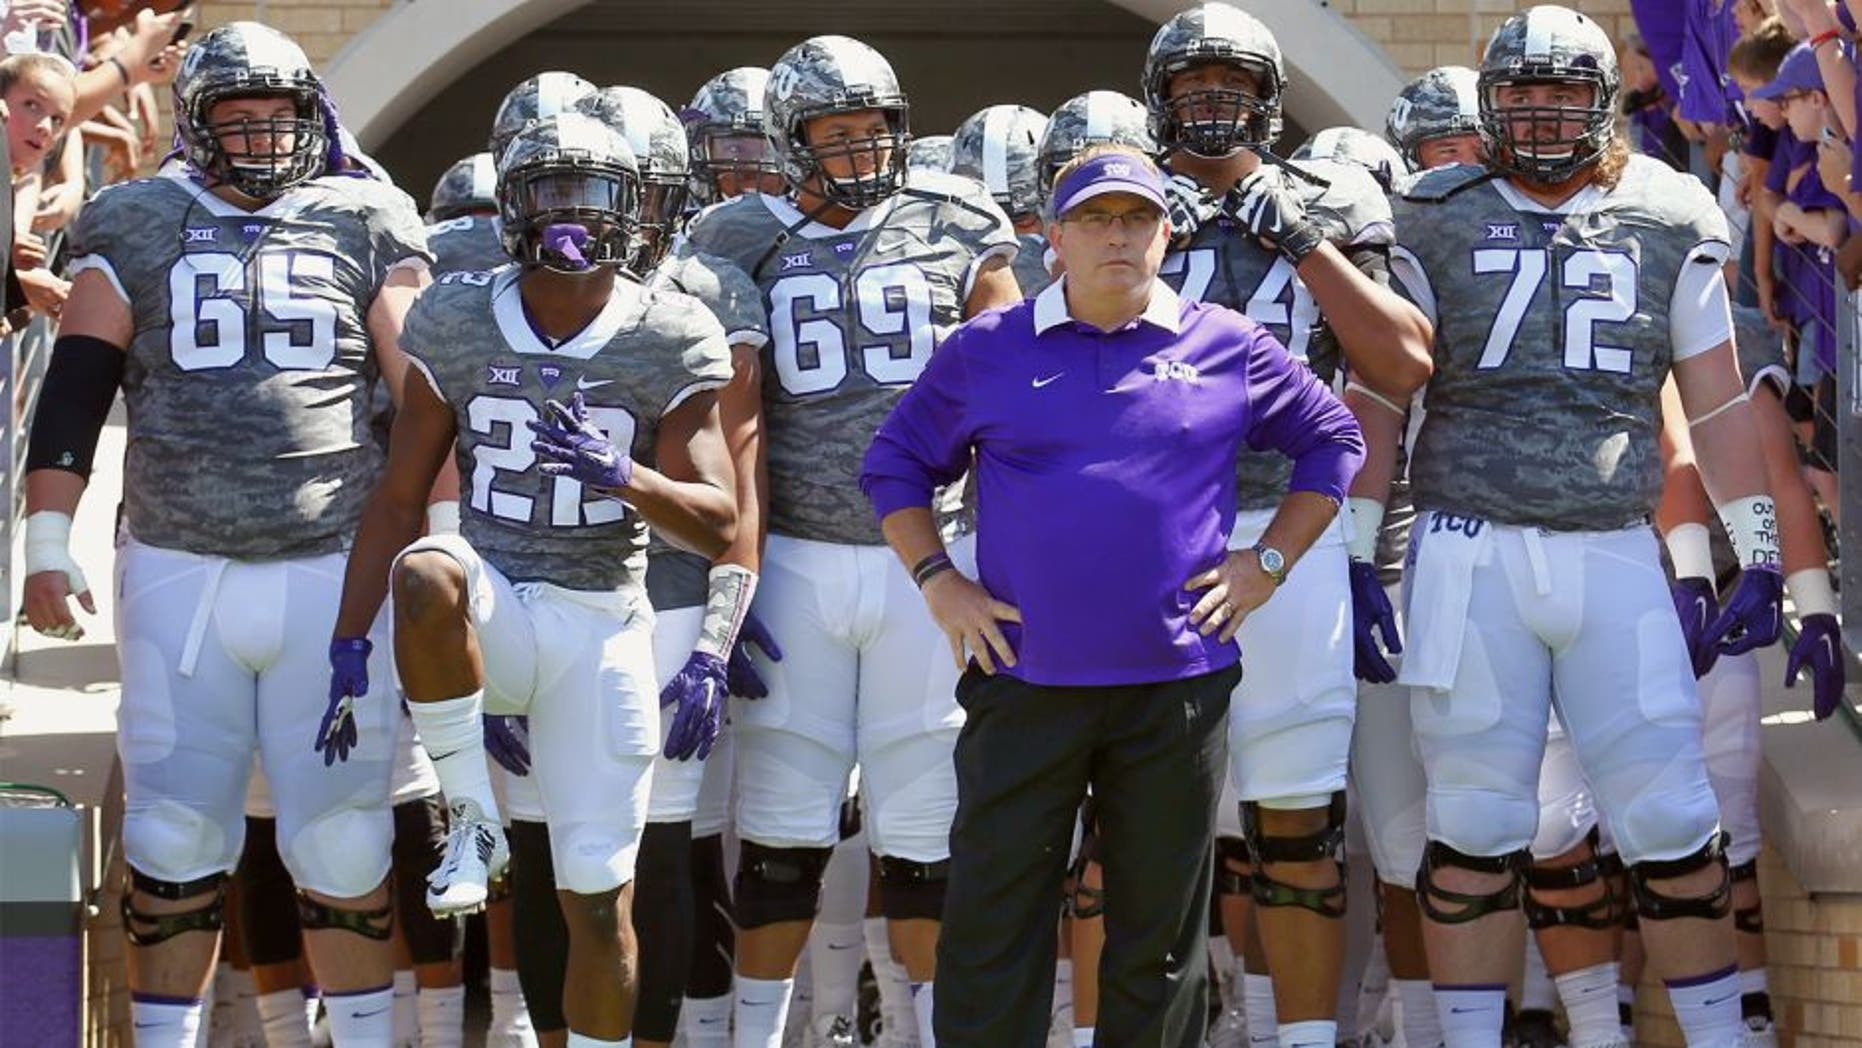 FORT WORTH, TX - SEPTEMBER 12: Head coach Gary Patterson of the TCU Horned Frogs leads his team onto the field to take on the Stephen F. Austin Lumberjacks at Amon G. Carter Stadium on September 12, 2015 in Fort Worth, Texas. (Photo by Tom Pennington/Getty Images)